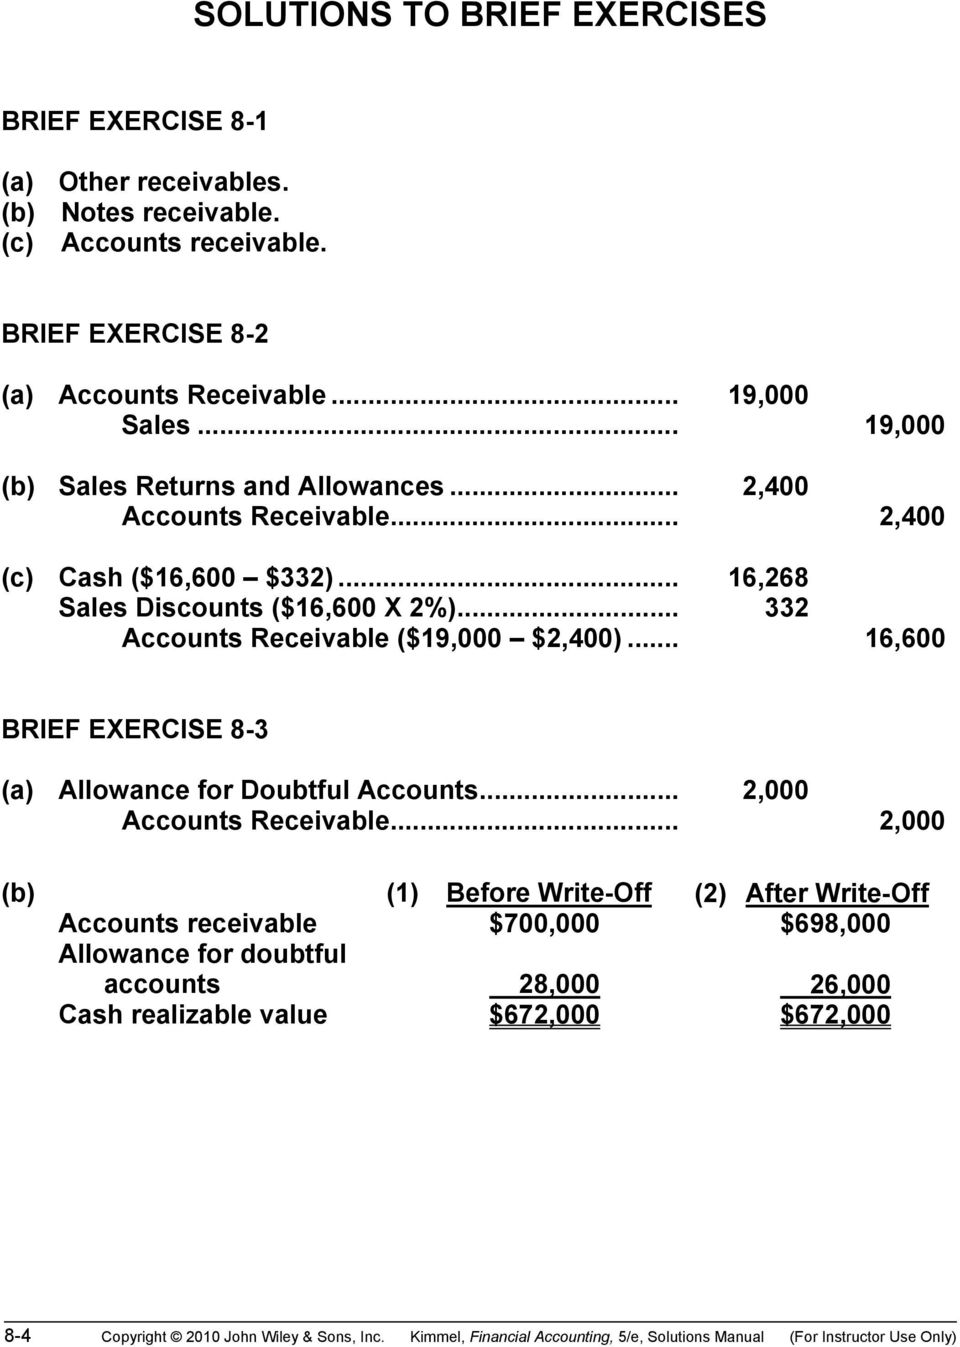 .. 16,600 BRIEF EXERCISE 8-3 (a) Allowance for Doubtful Accounts... 2,000 Accounts Receivable.